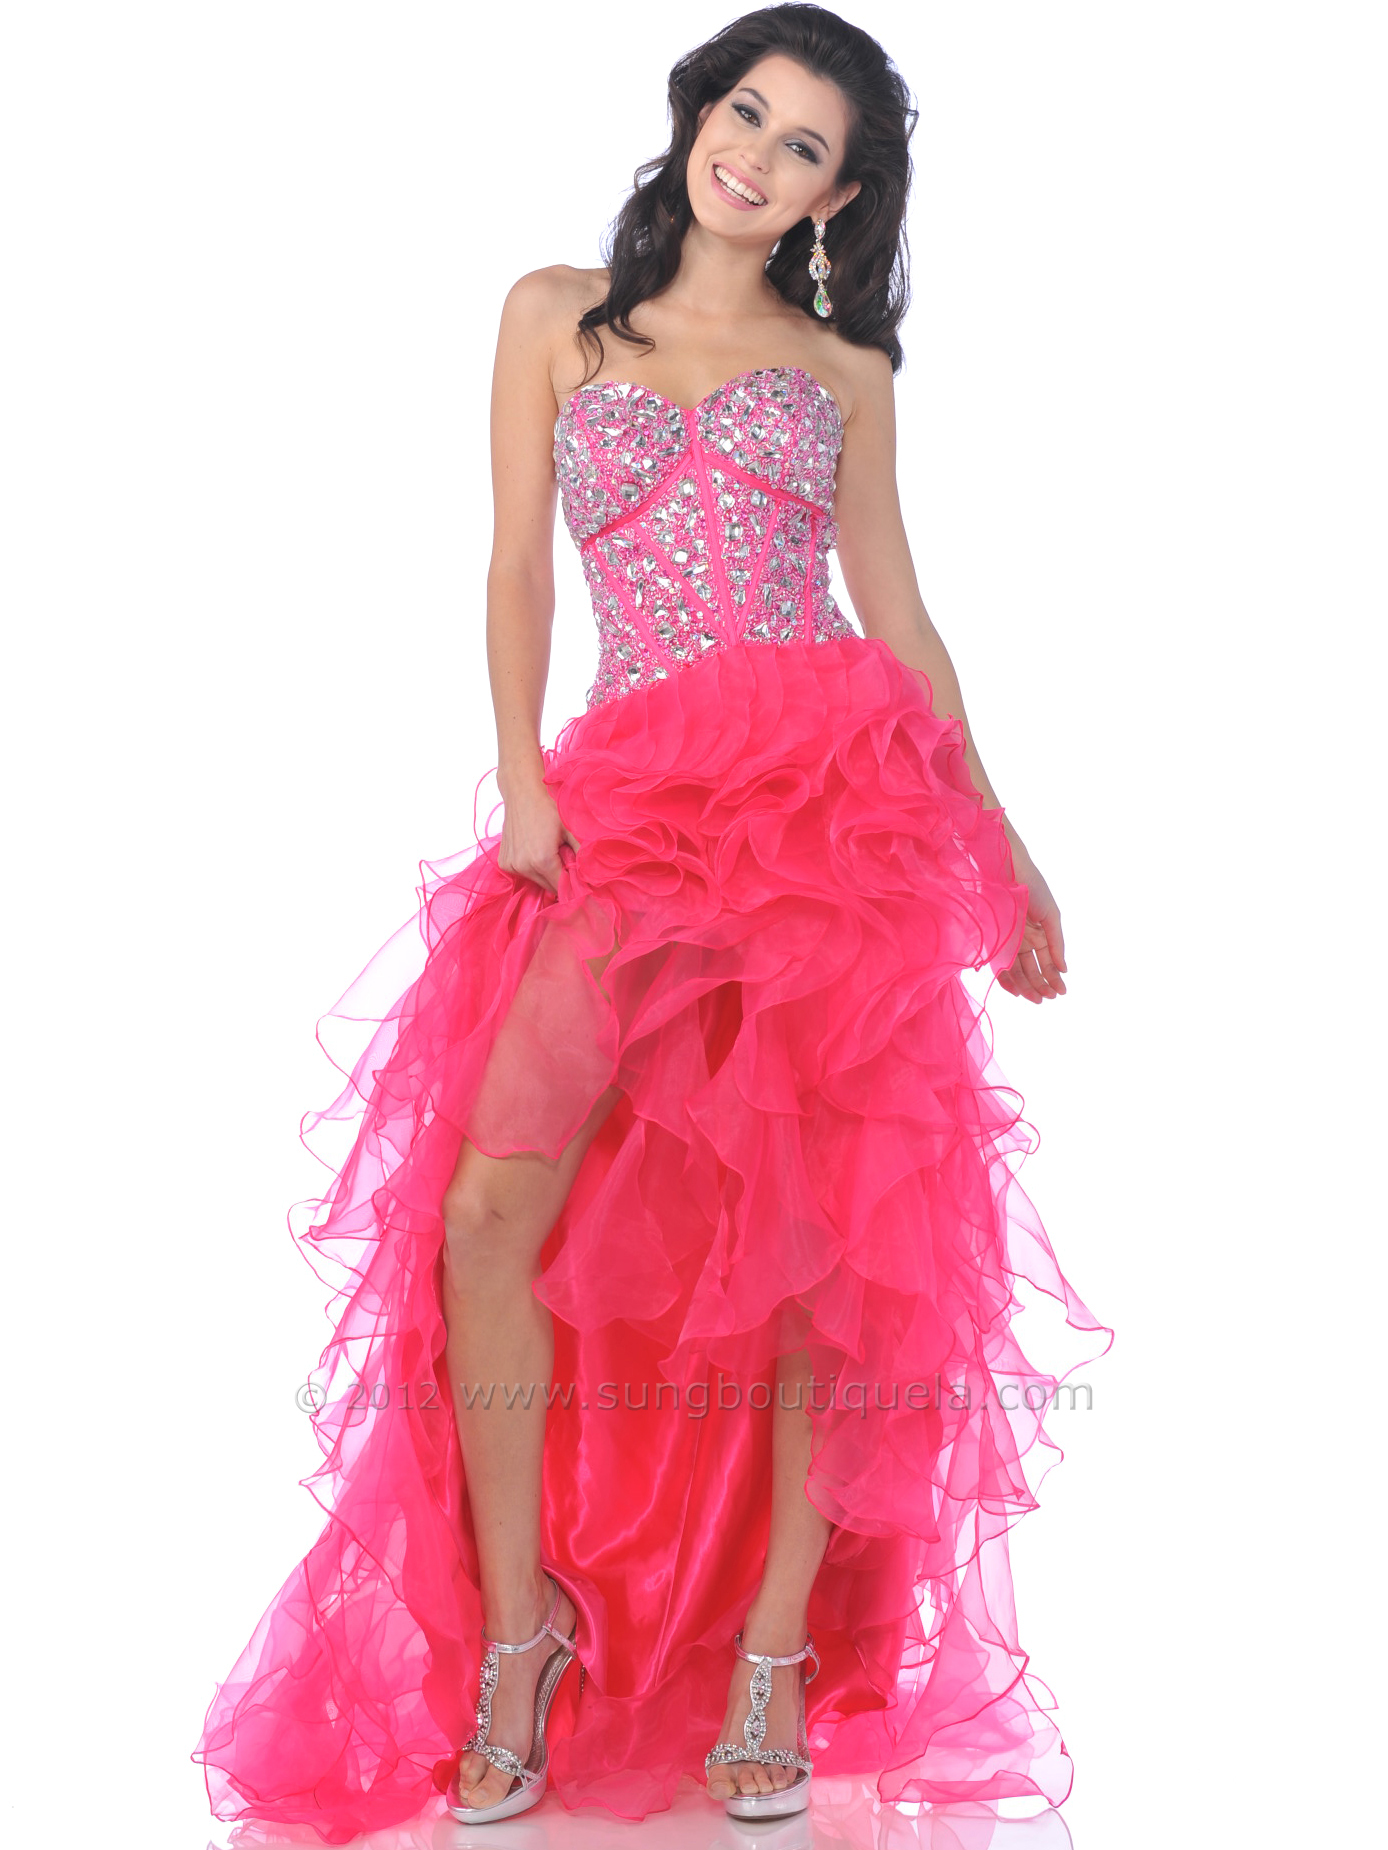 Jeweled Corset Top Ruffle High Low Prom Dress | Sung Boutique L.A.